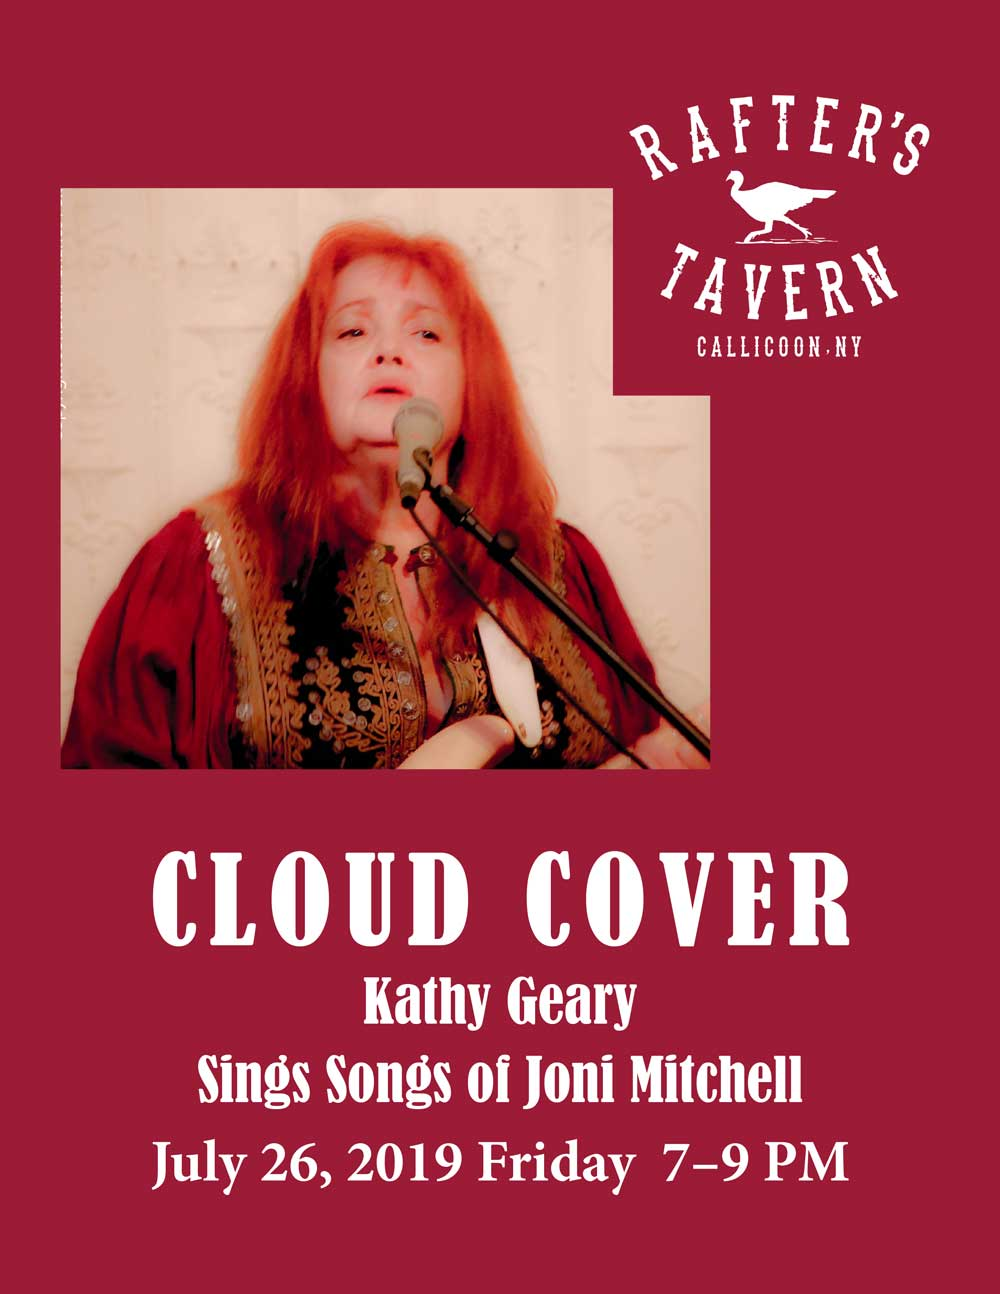 CLOUD COVER Kathy Geary Sings the Songs of Joni Mitchell